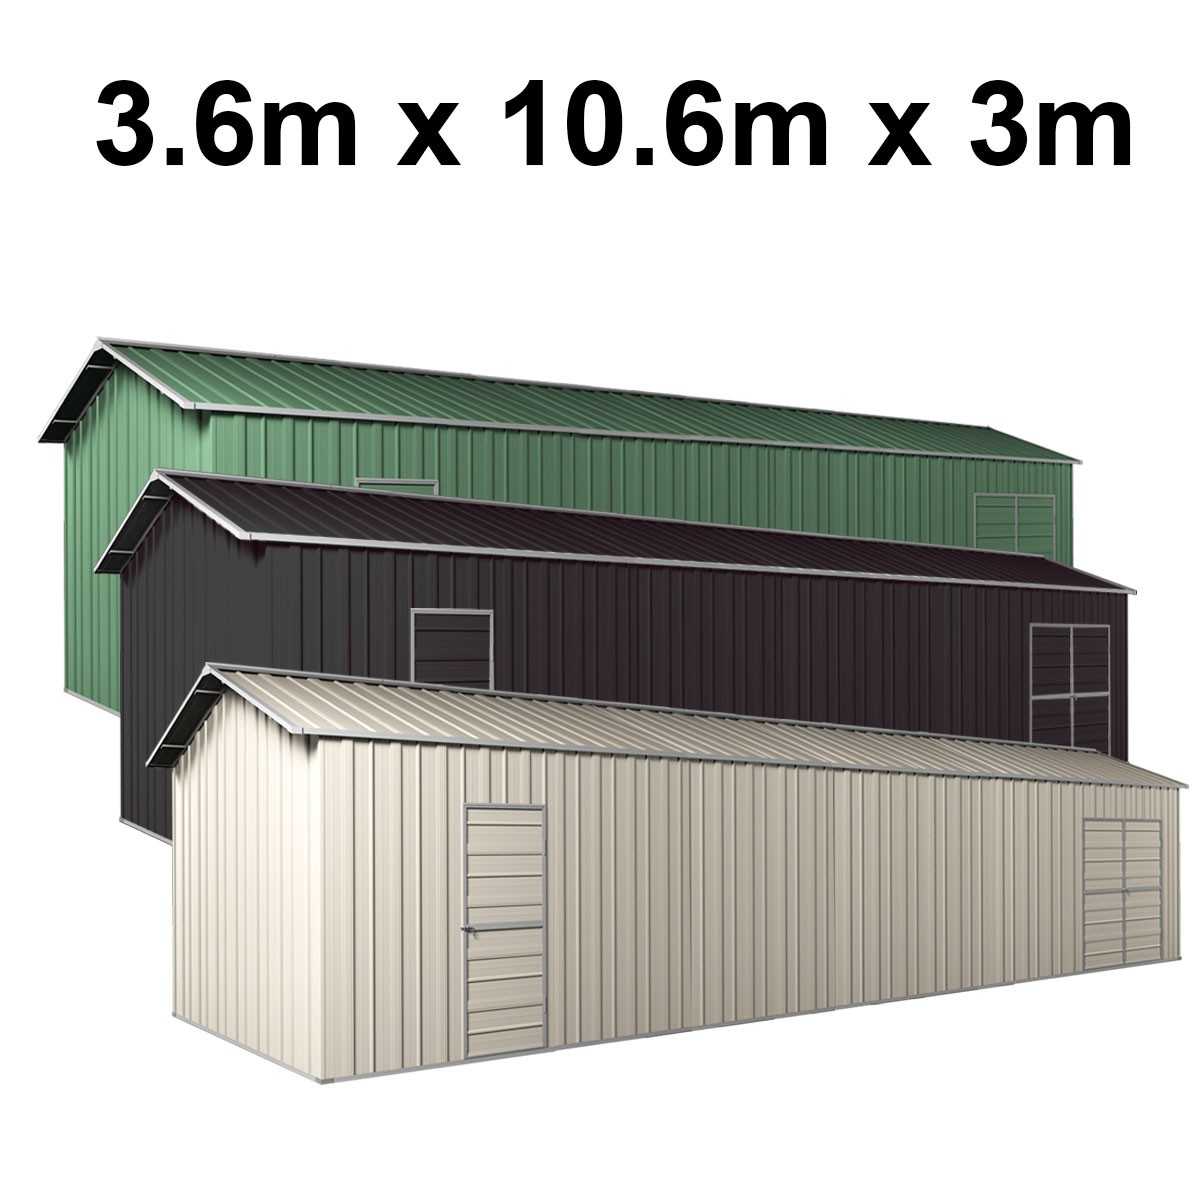 Double Garage Design In Sidcup: Garage Workshop Shed 3.6m X 10.64m X 3m Side Double Doors